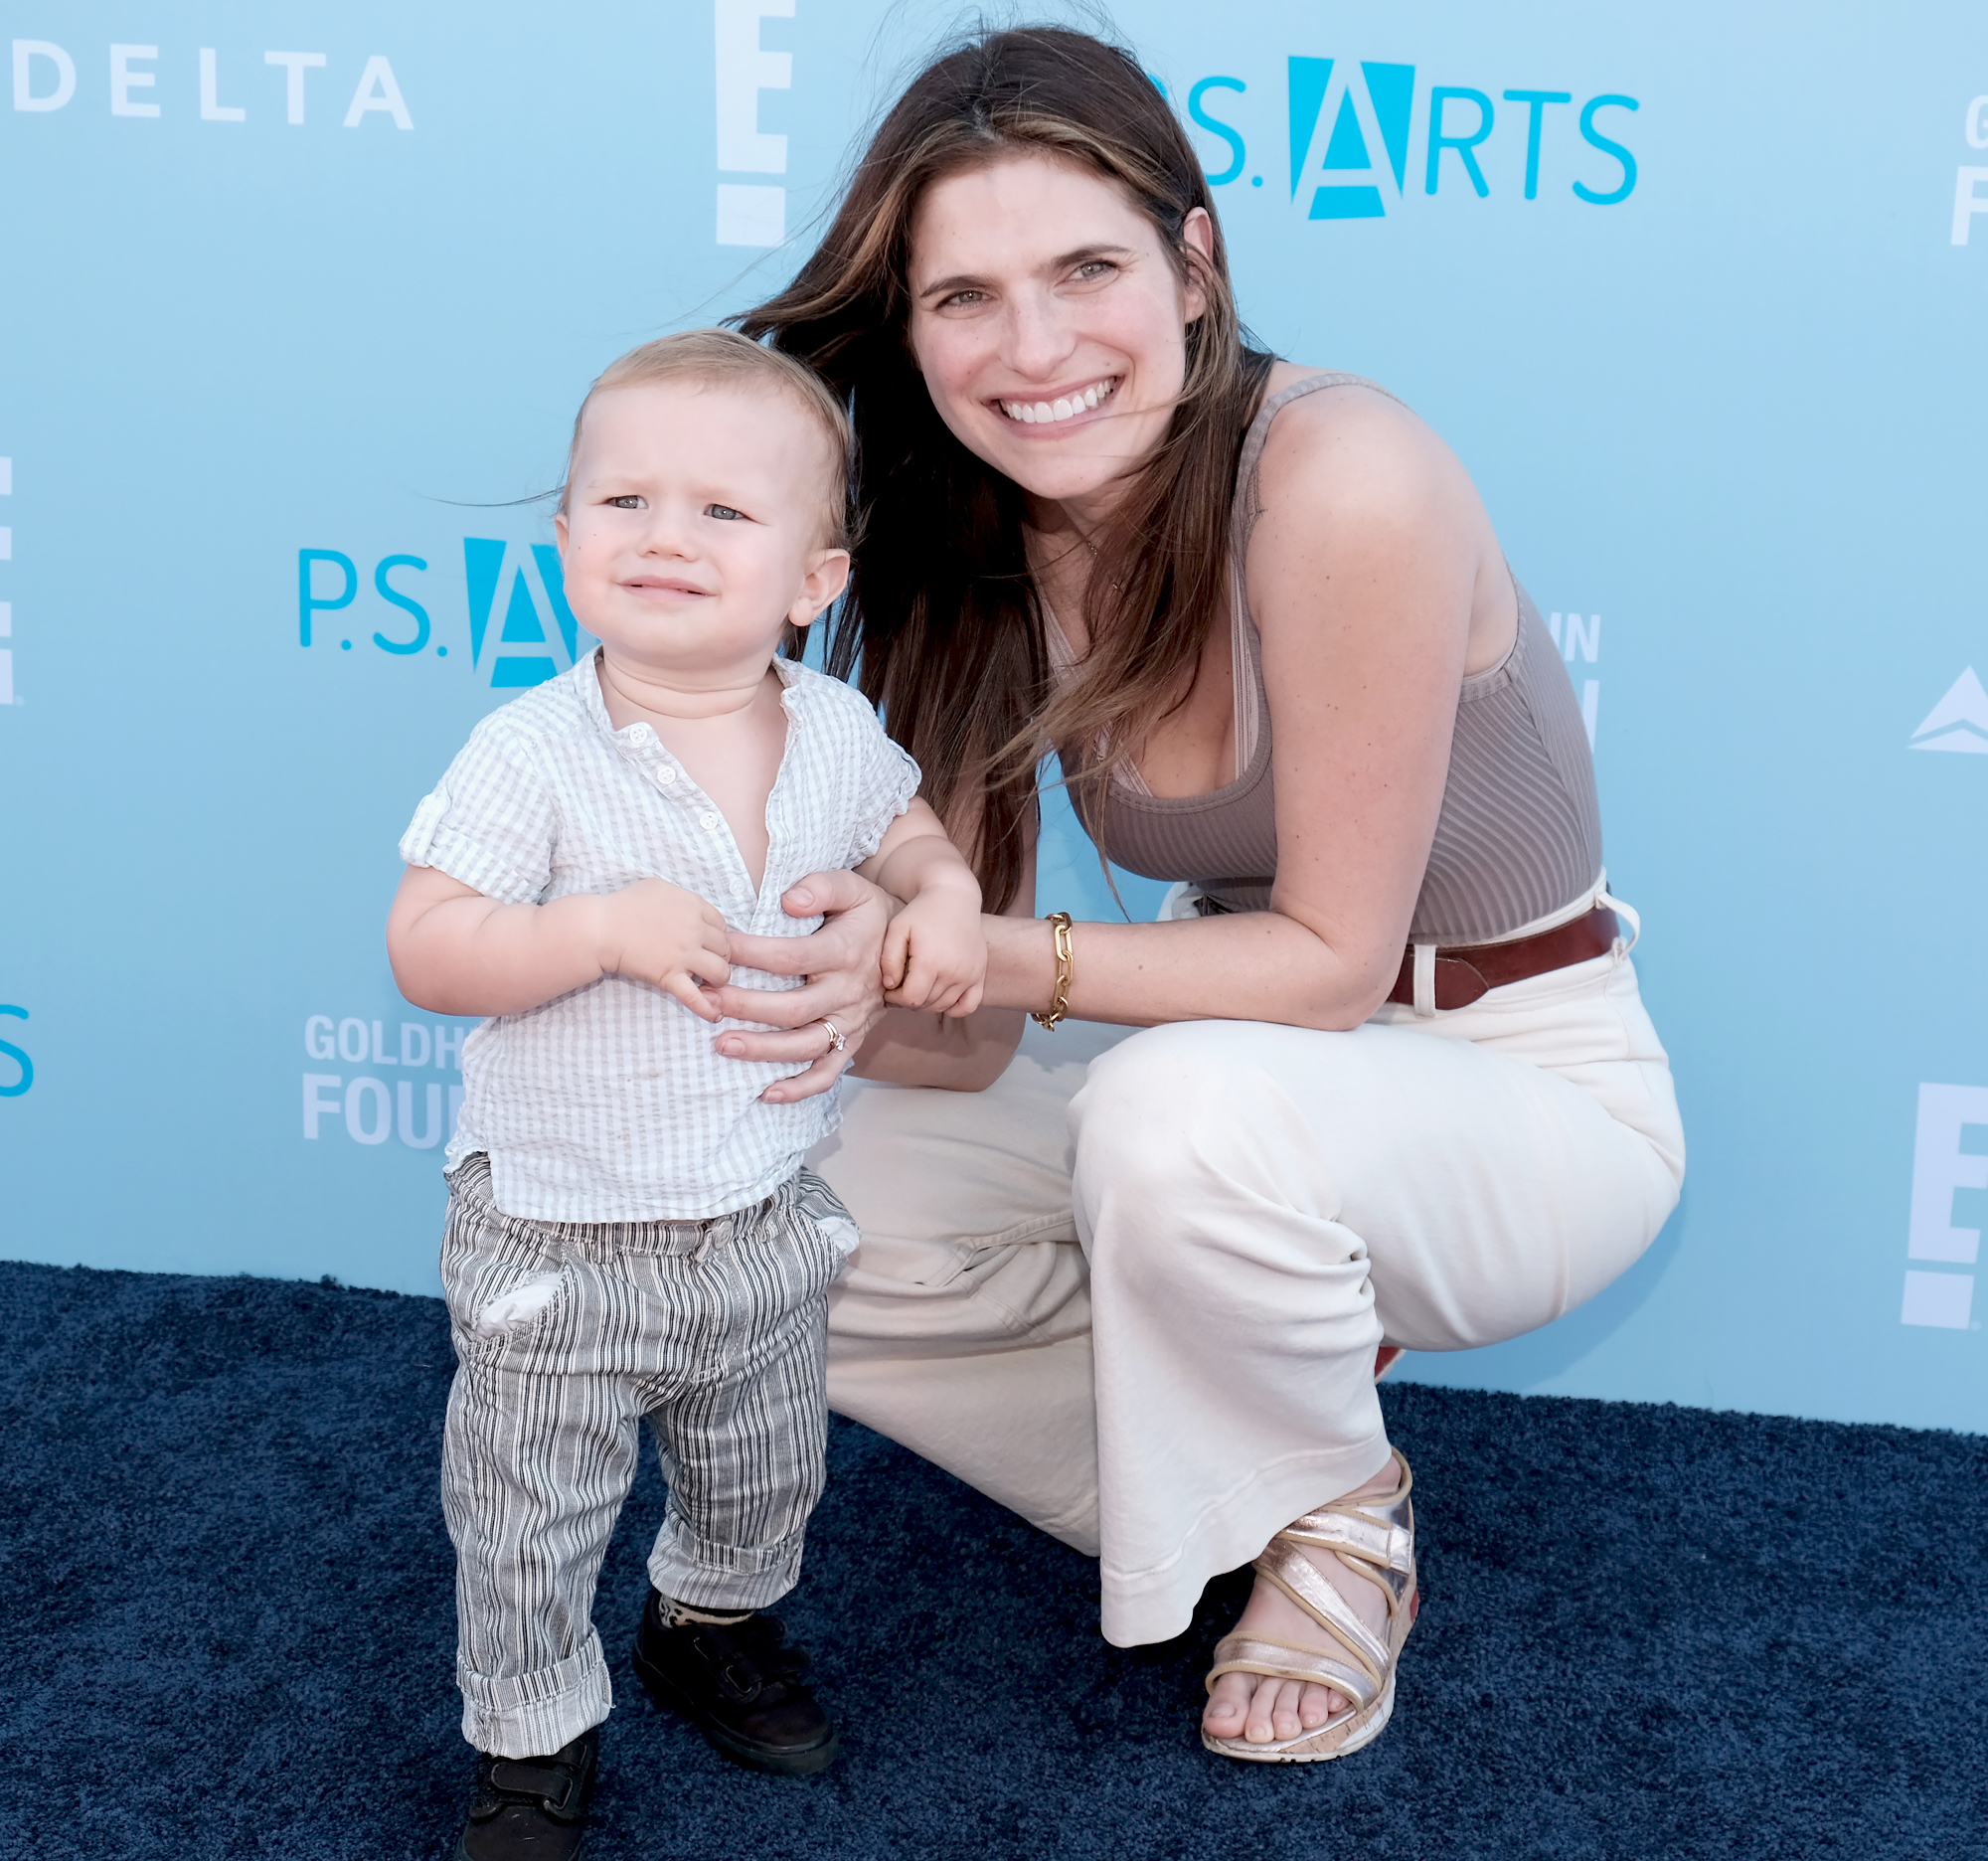 Lake-Bell-told-son-couldn't-walk-home-birth